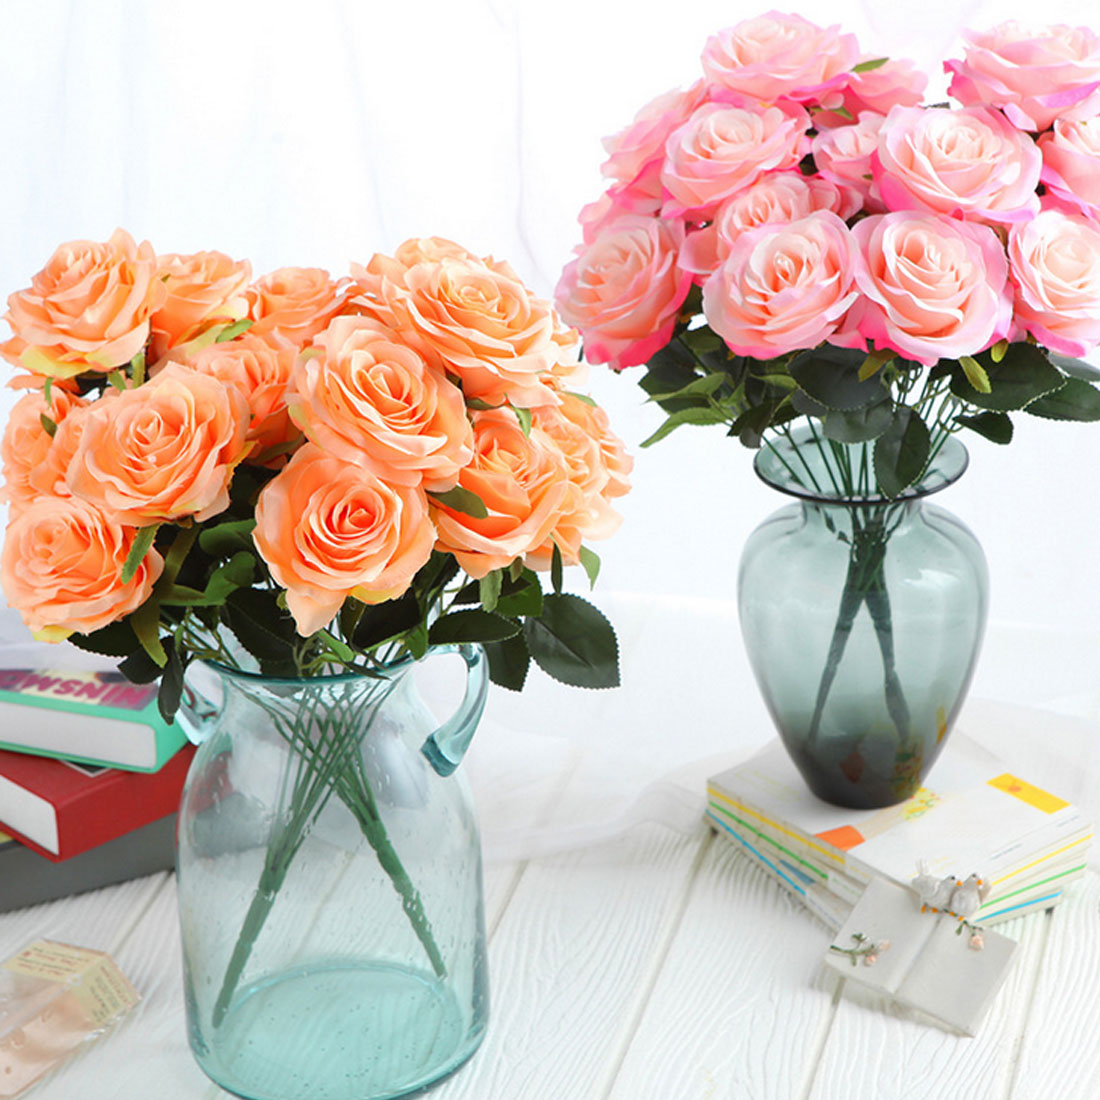 Rose Artificial Flower 10 Heads 45cm French Rose Bouquet Silk Flower for Wedding Home New Year Marriage Fake Flower Decoration in Artificial Dried Flowers from Home Garden